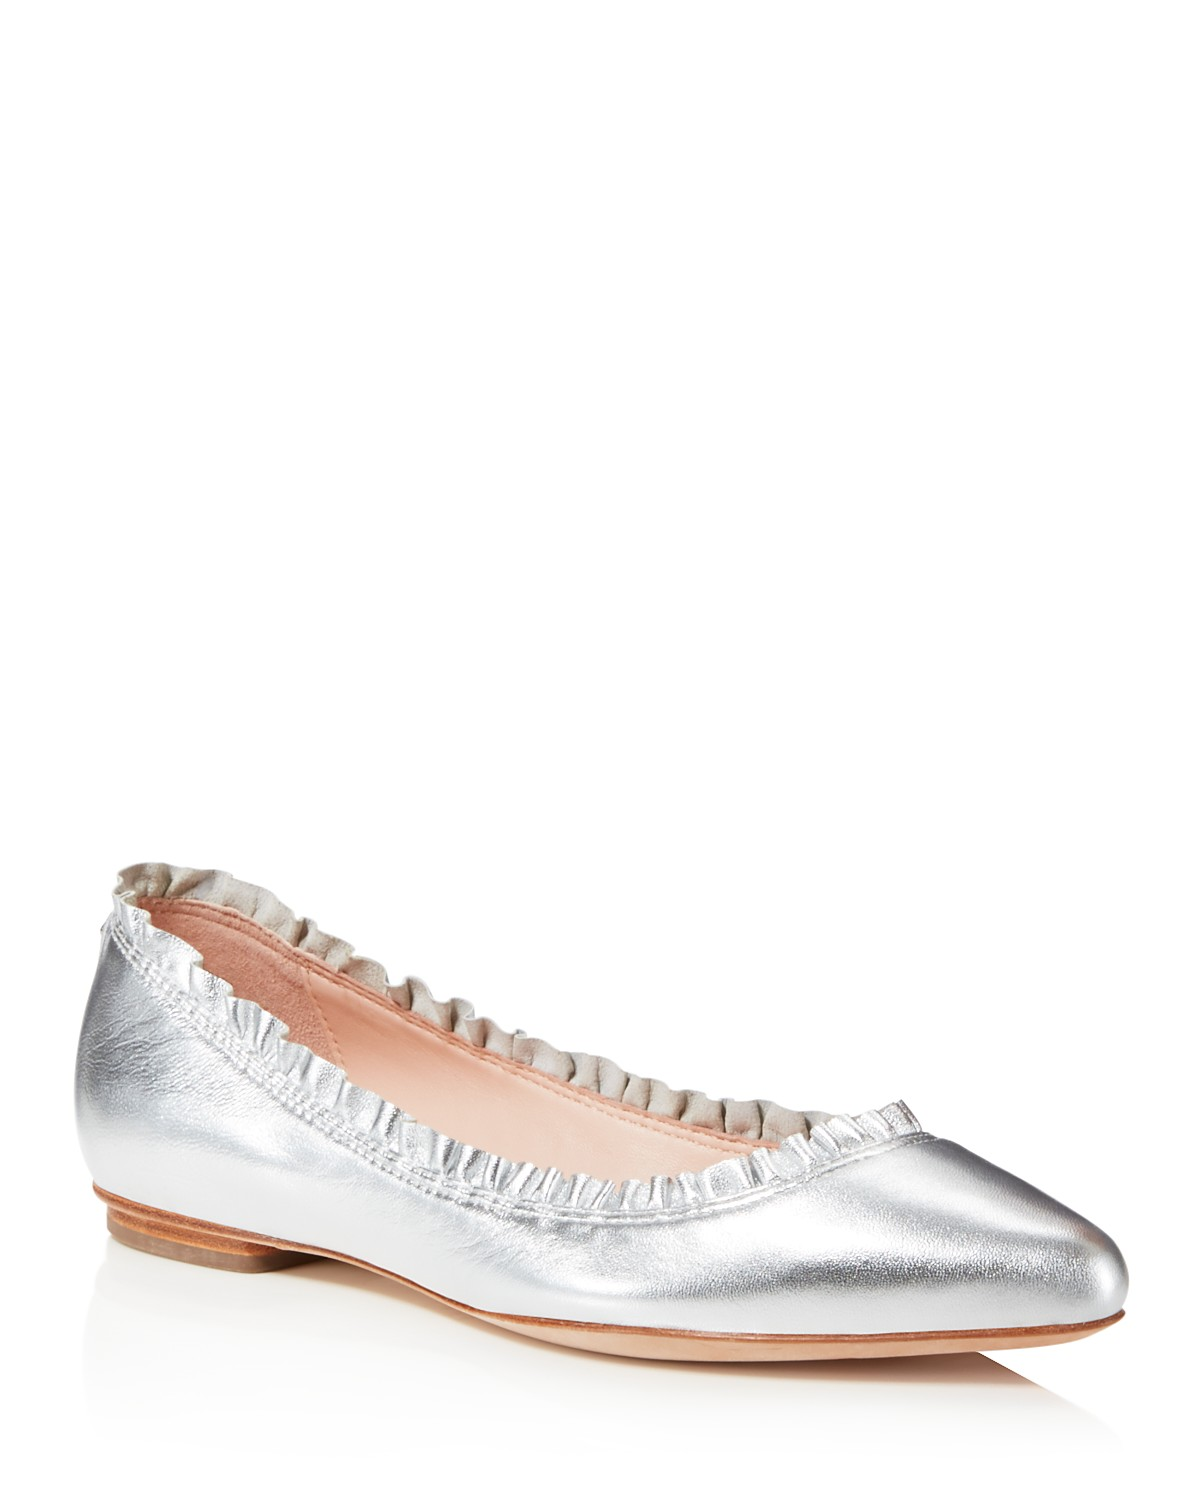 Kate Spade New York Women's Nicole Leather Flats QUEDh98ag8